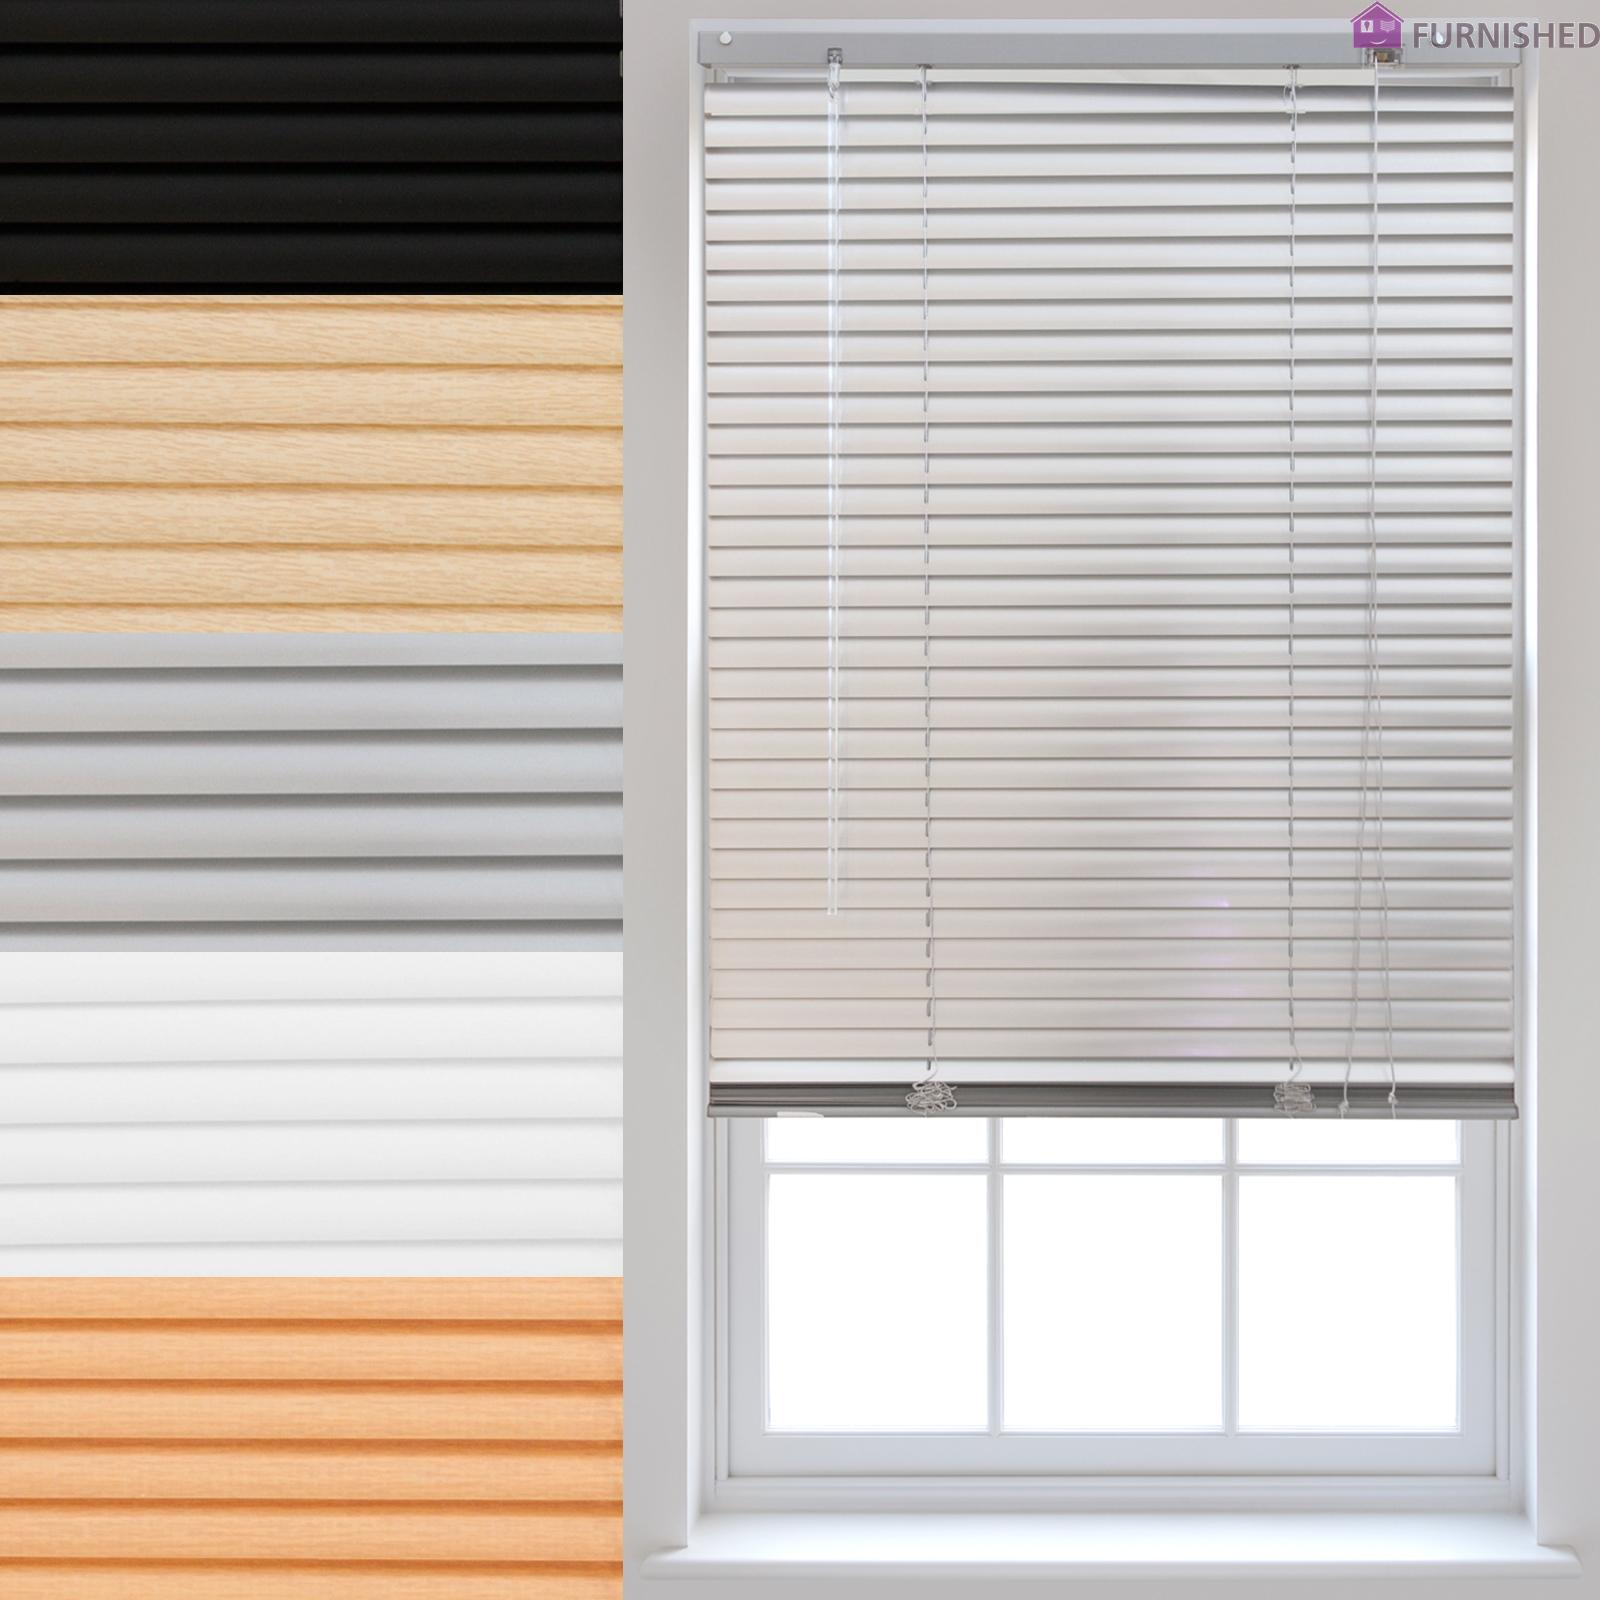 Pvc venetian window blinds trimmable home office blind new for 2 way window blinds